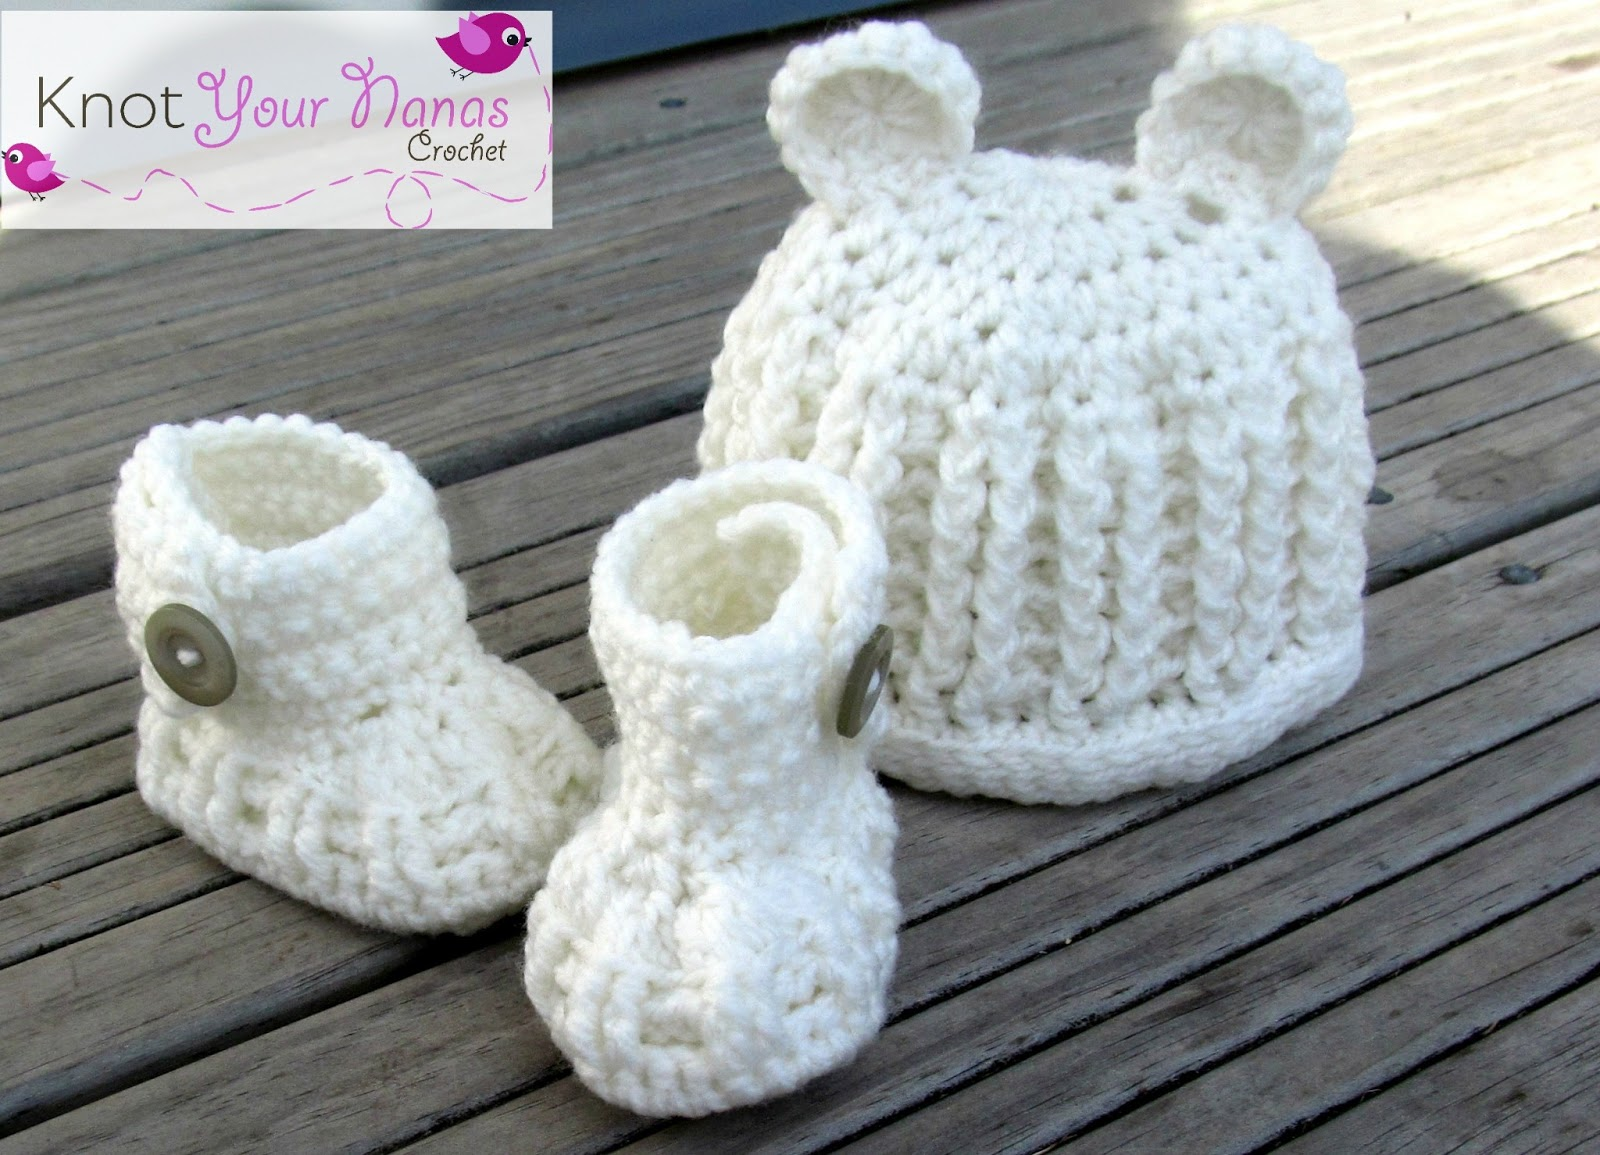 Crocheting Booties : Knot Your Nanas Crochet: Crochet Newborn Booties